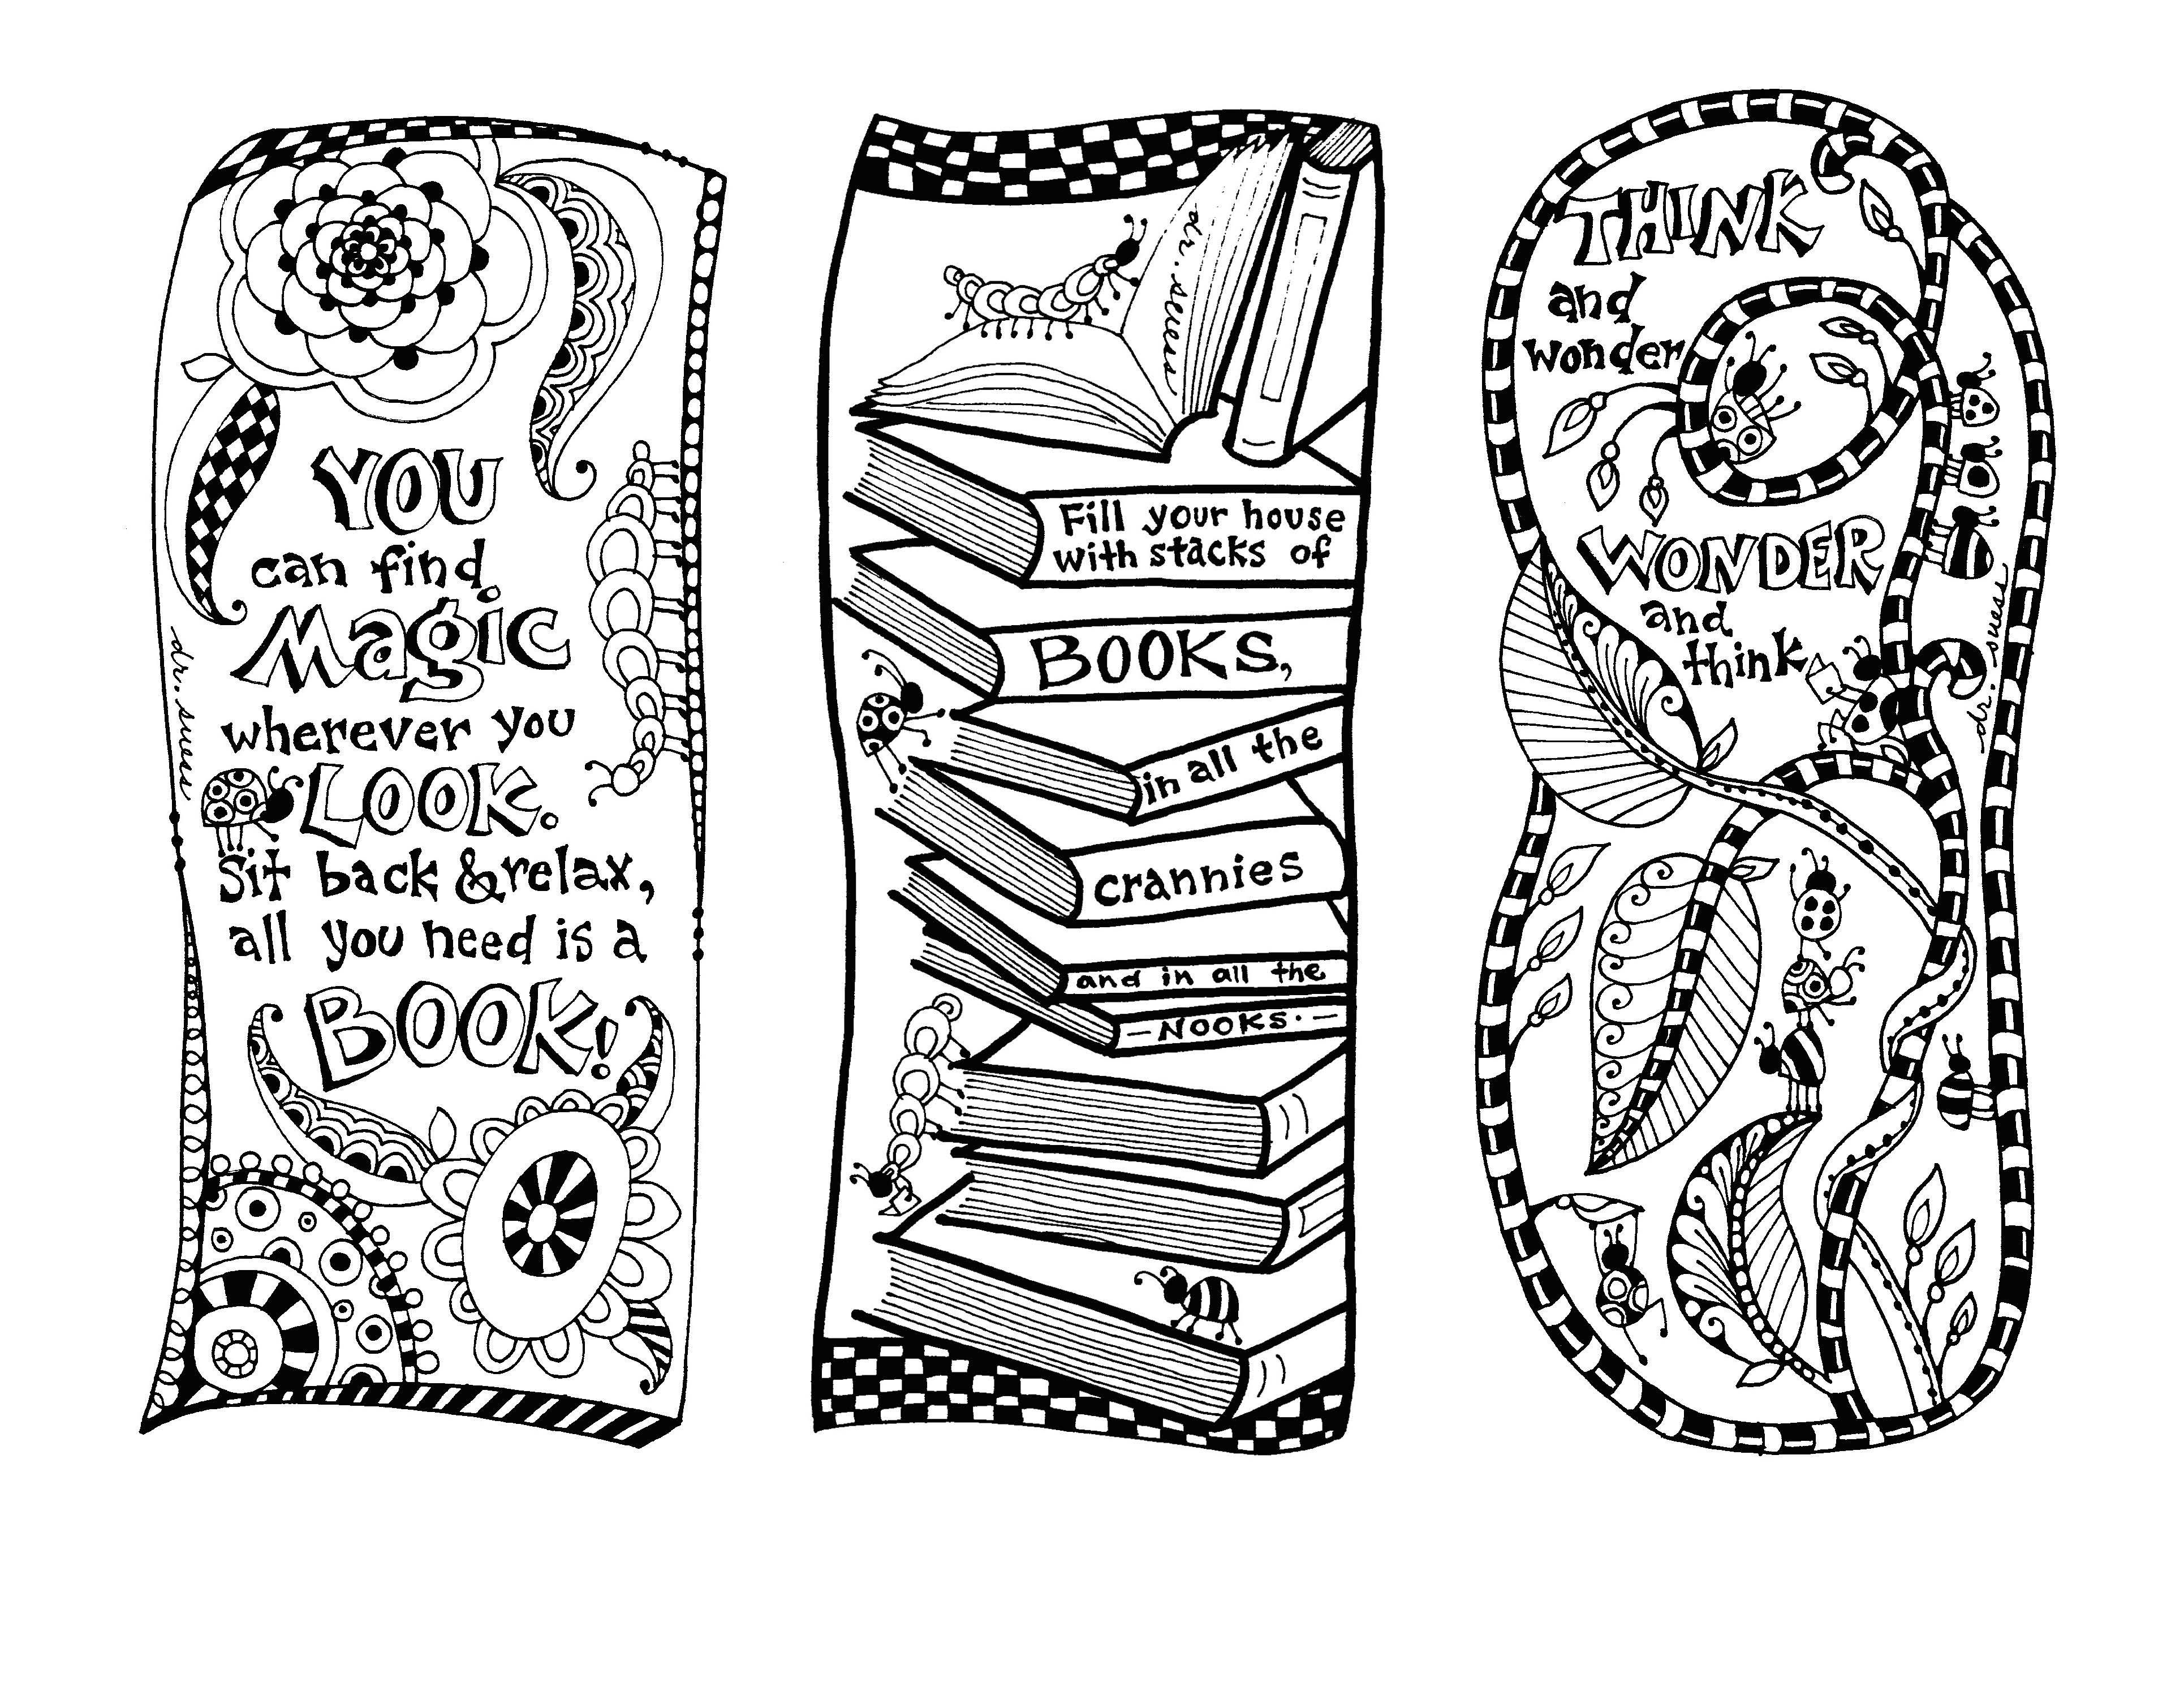 Dr Seuss Bookmarks Illustrated By Marie Browning Coloring Bookmarks Coloring Bookmarks Free Printable Coloring